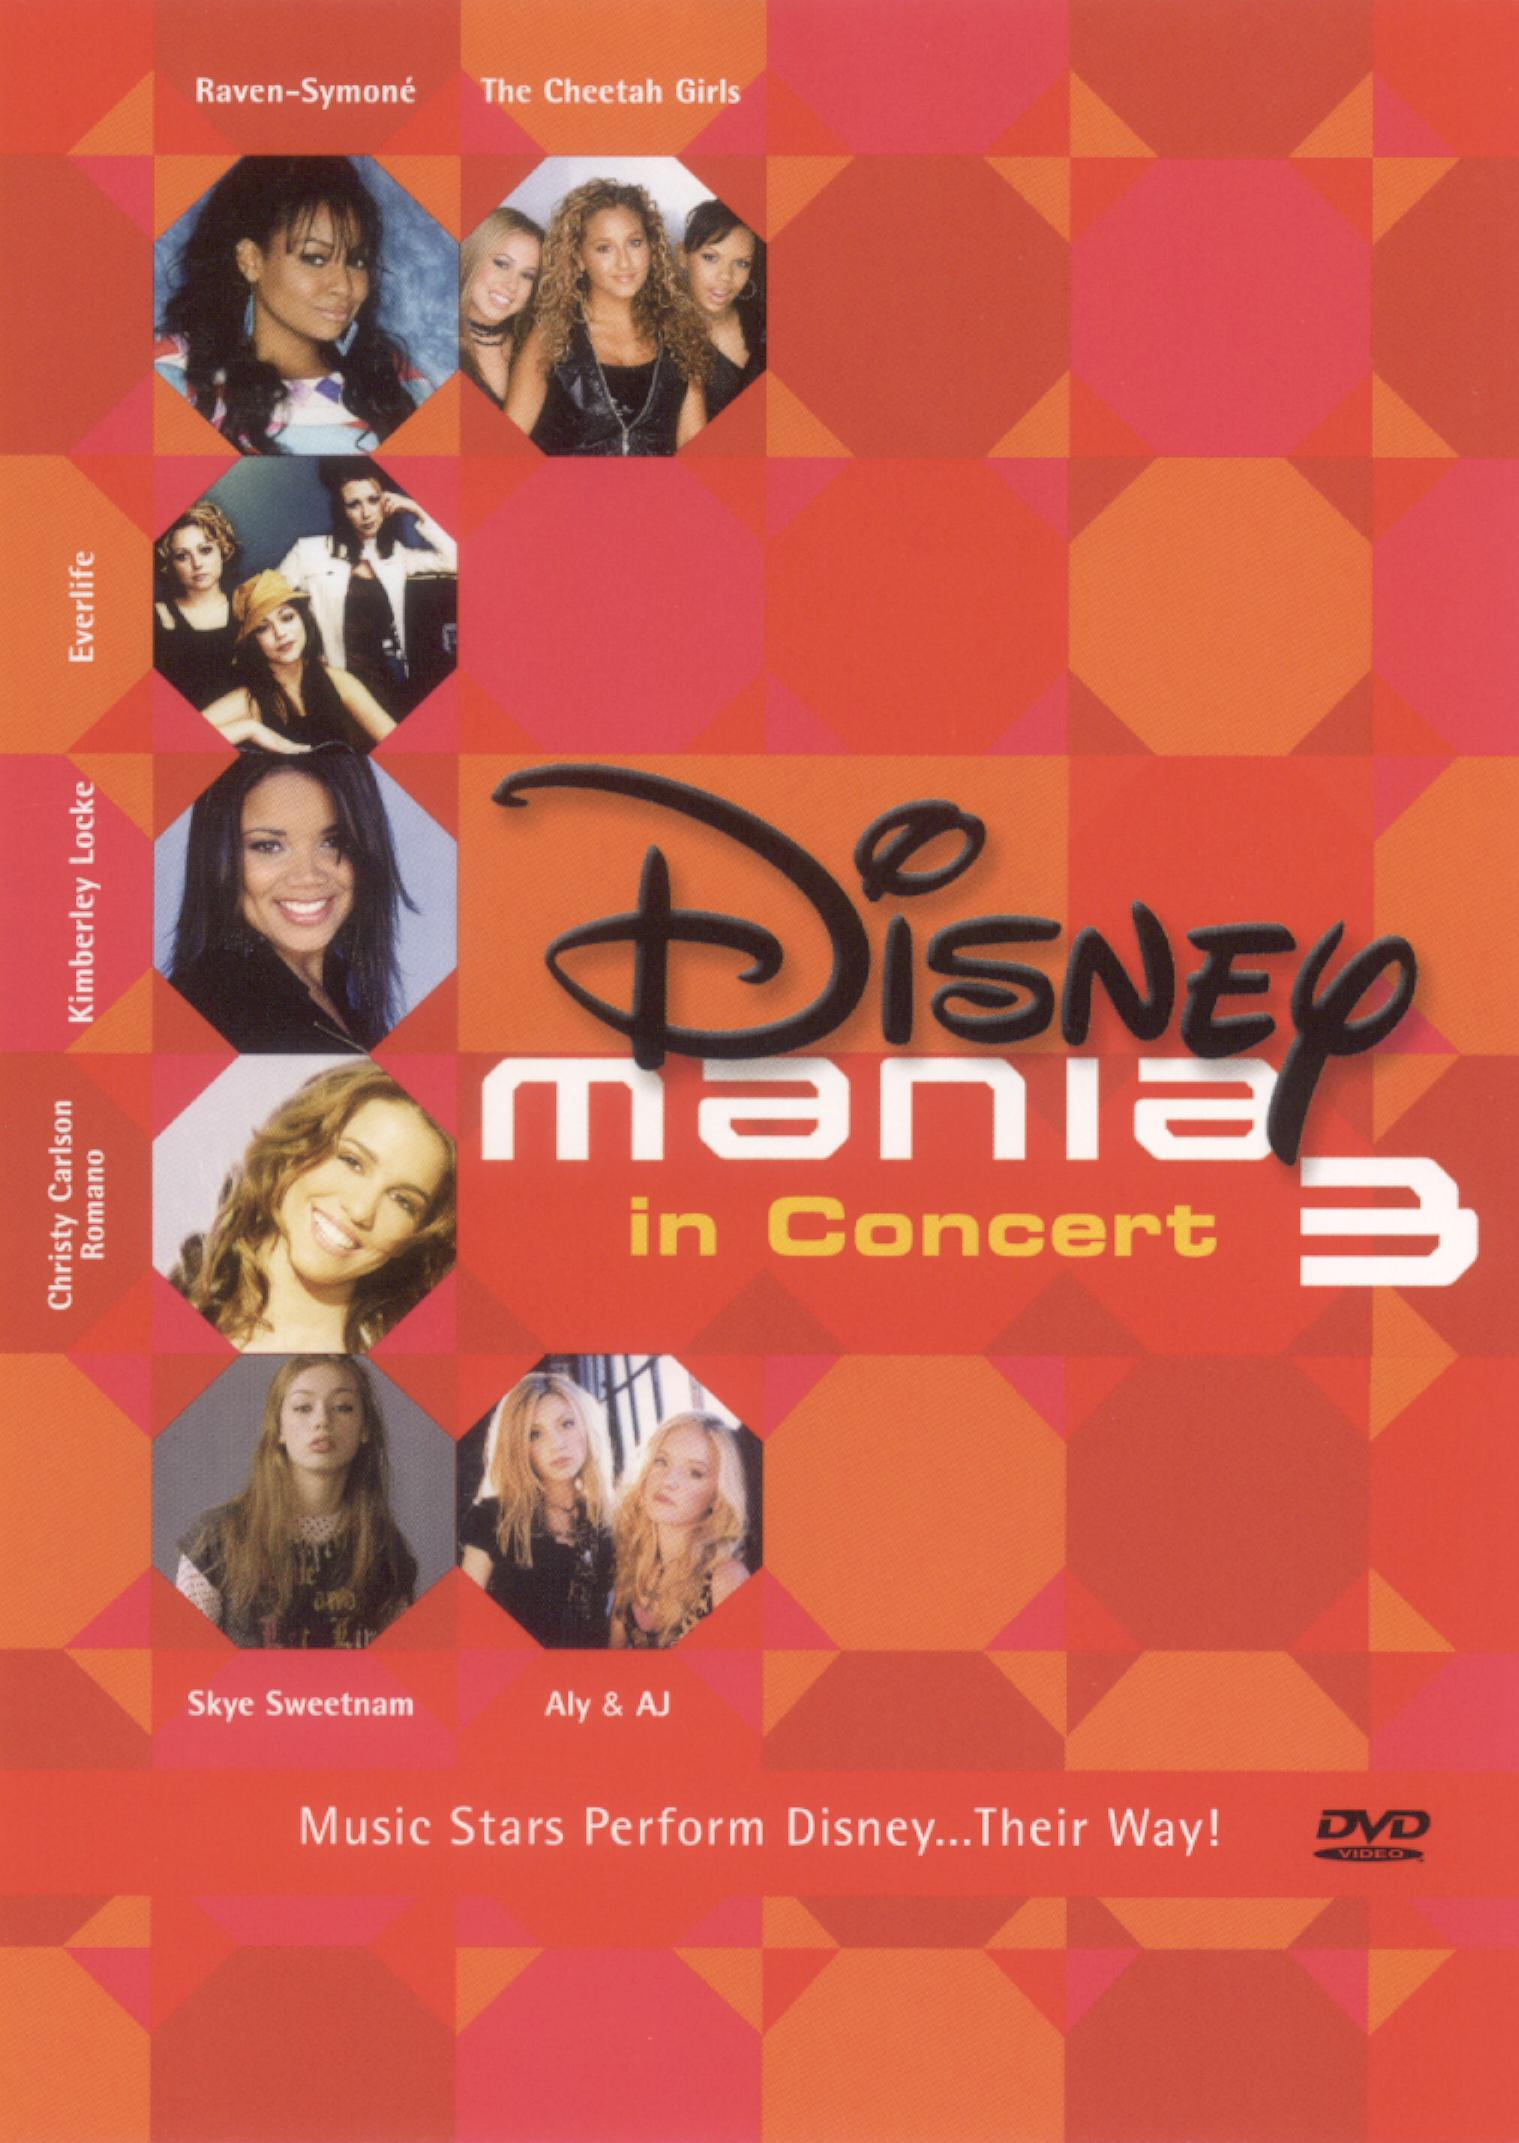 Disneymania in Concert 3